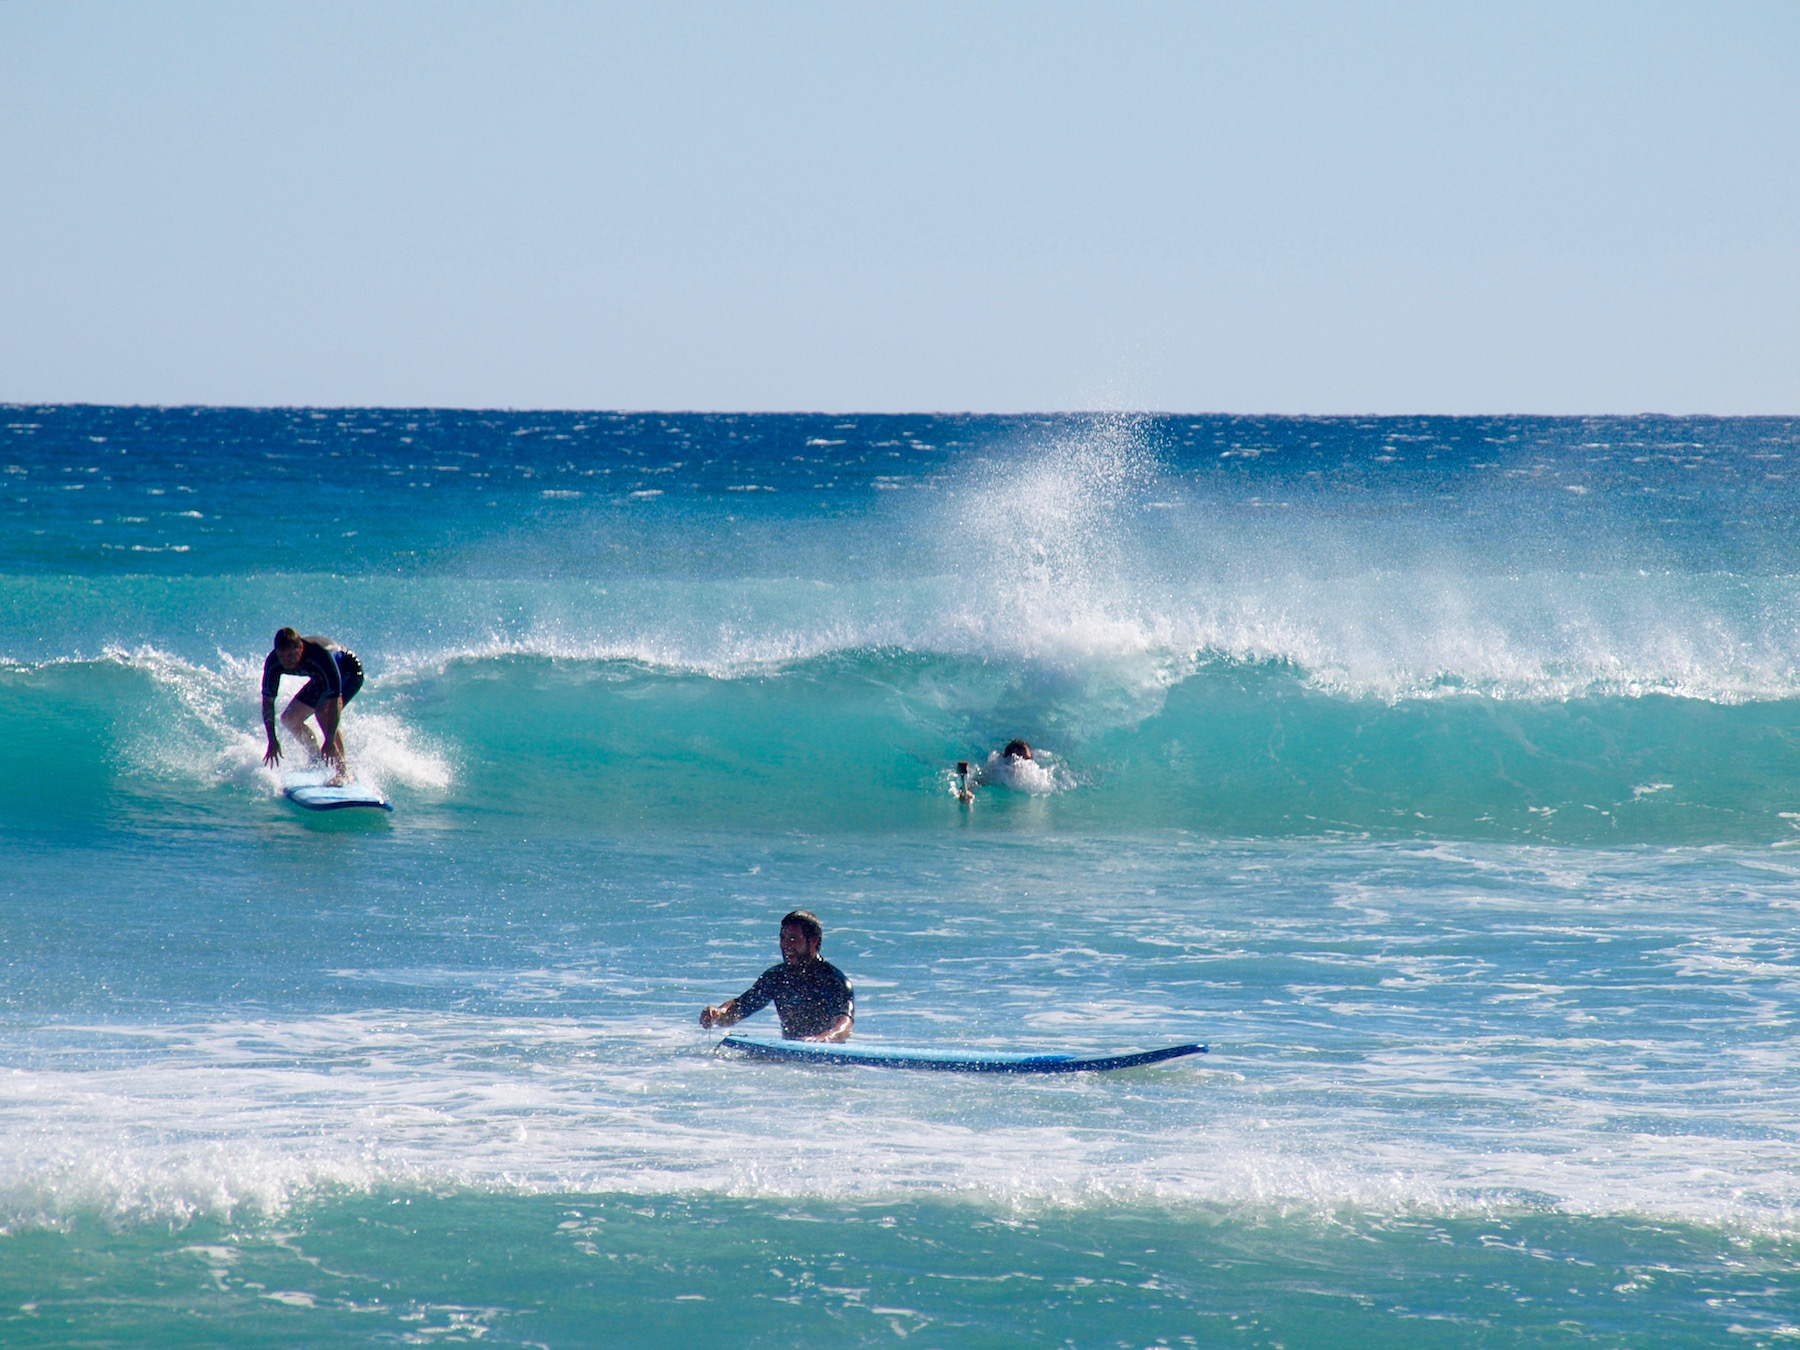 Learn to Surf, Surfboard Hire, Surf Lessons, Beginner, Intermediate, Soft Surfboards, Exmouth, Western Australia, Ningaloo Reef